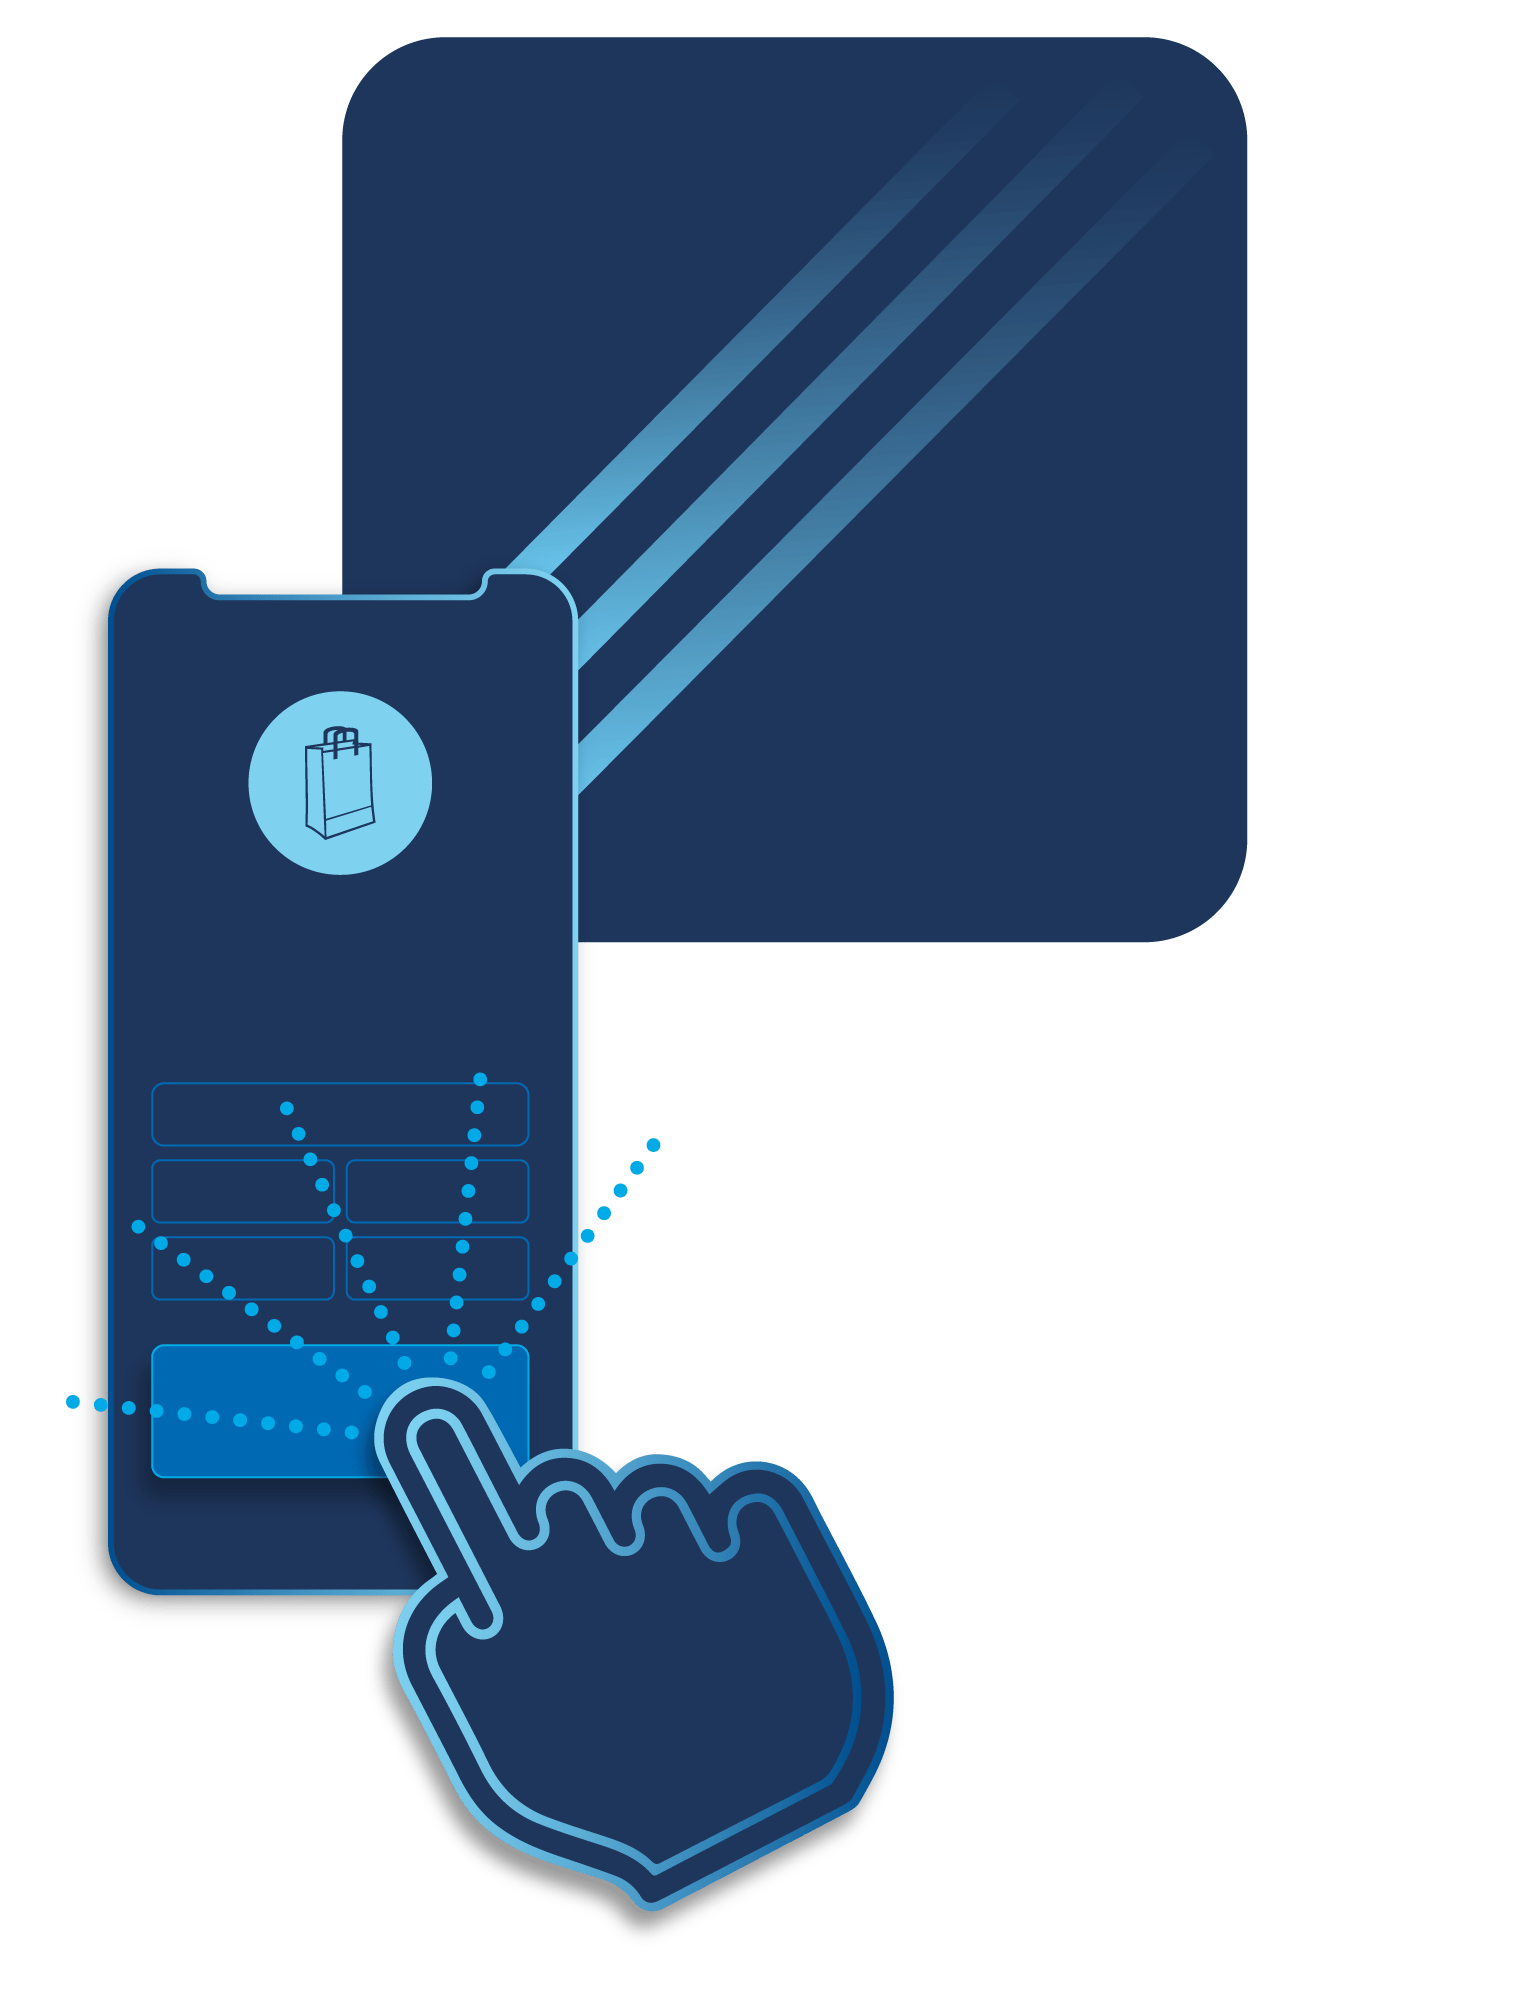 m-commerce application security